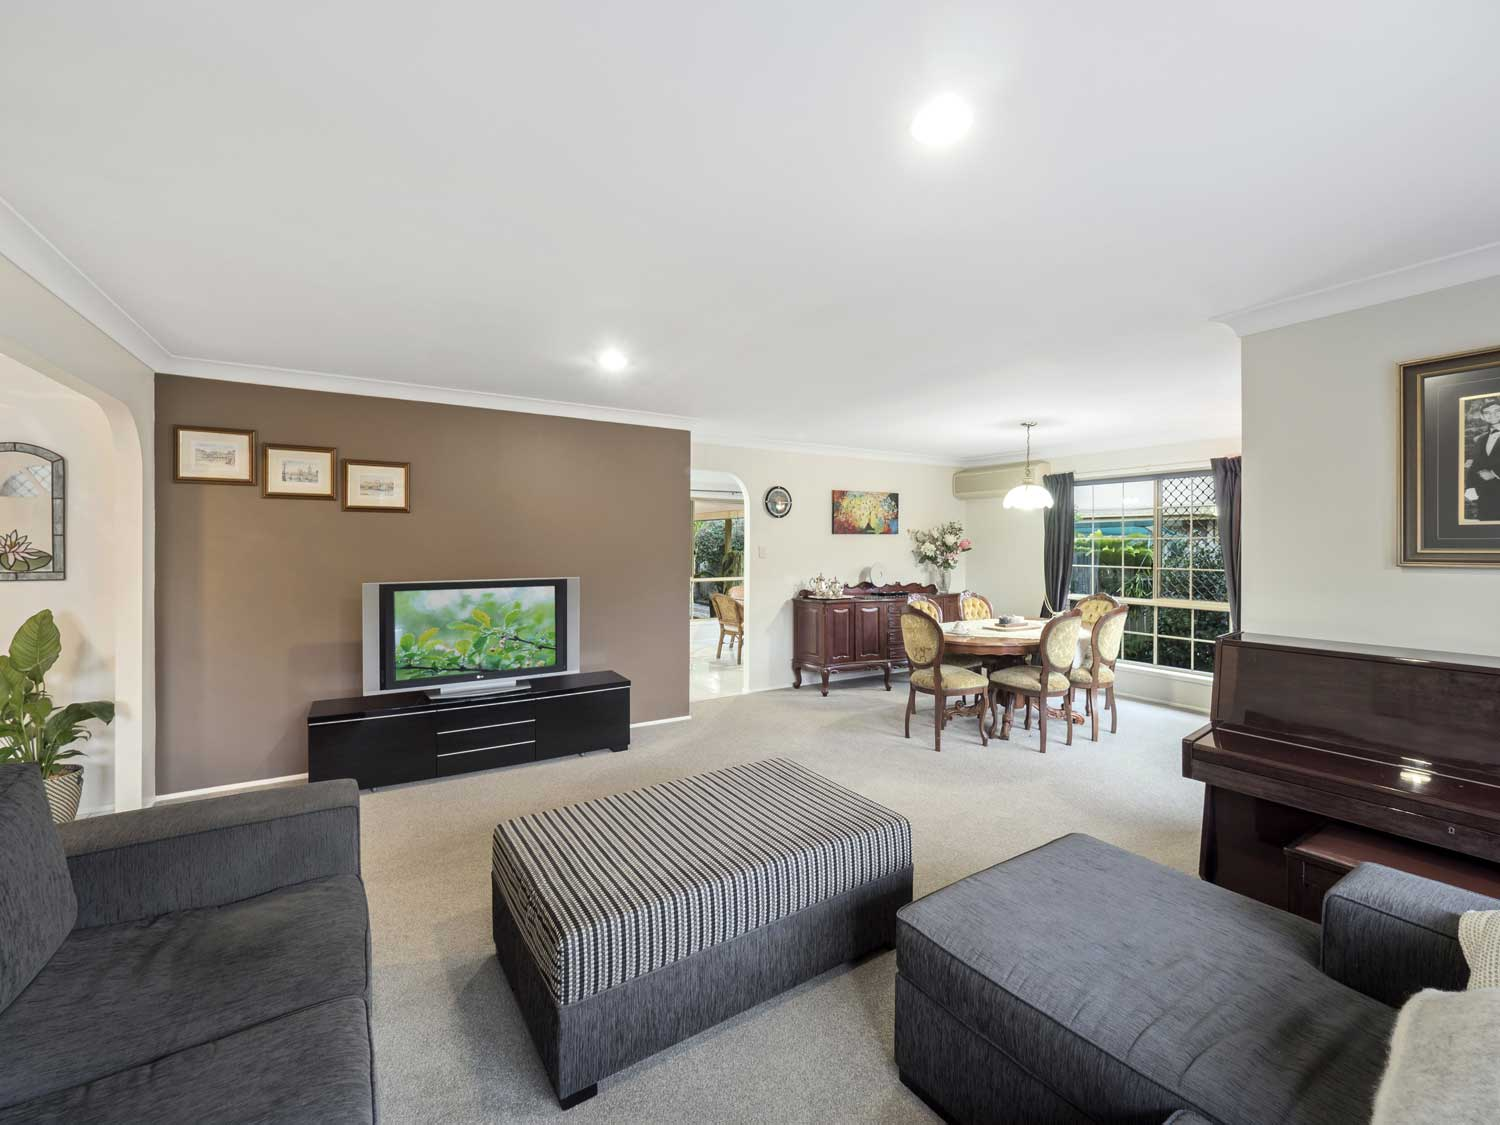 The lounge and dining areas - photographing a home for sale at Kuraby